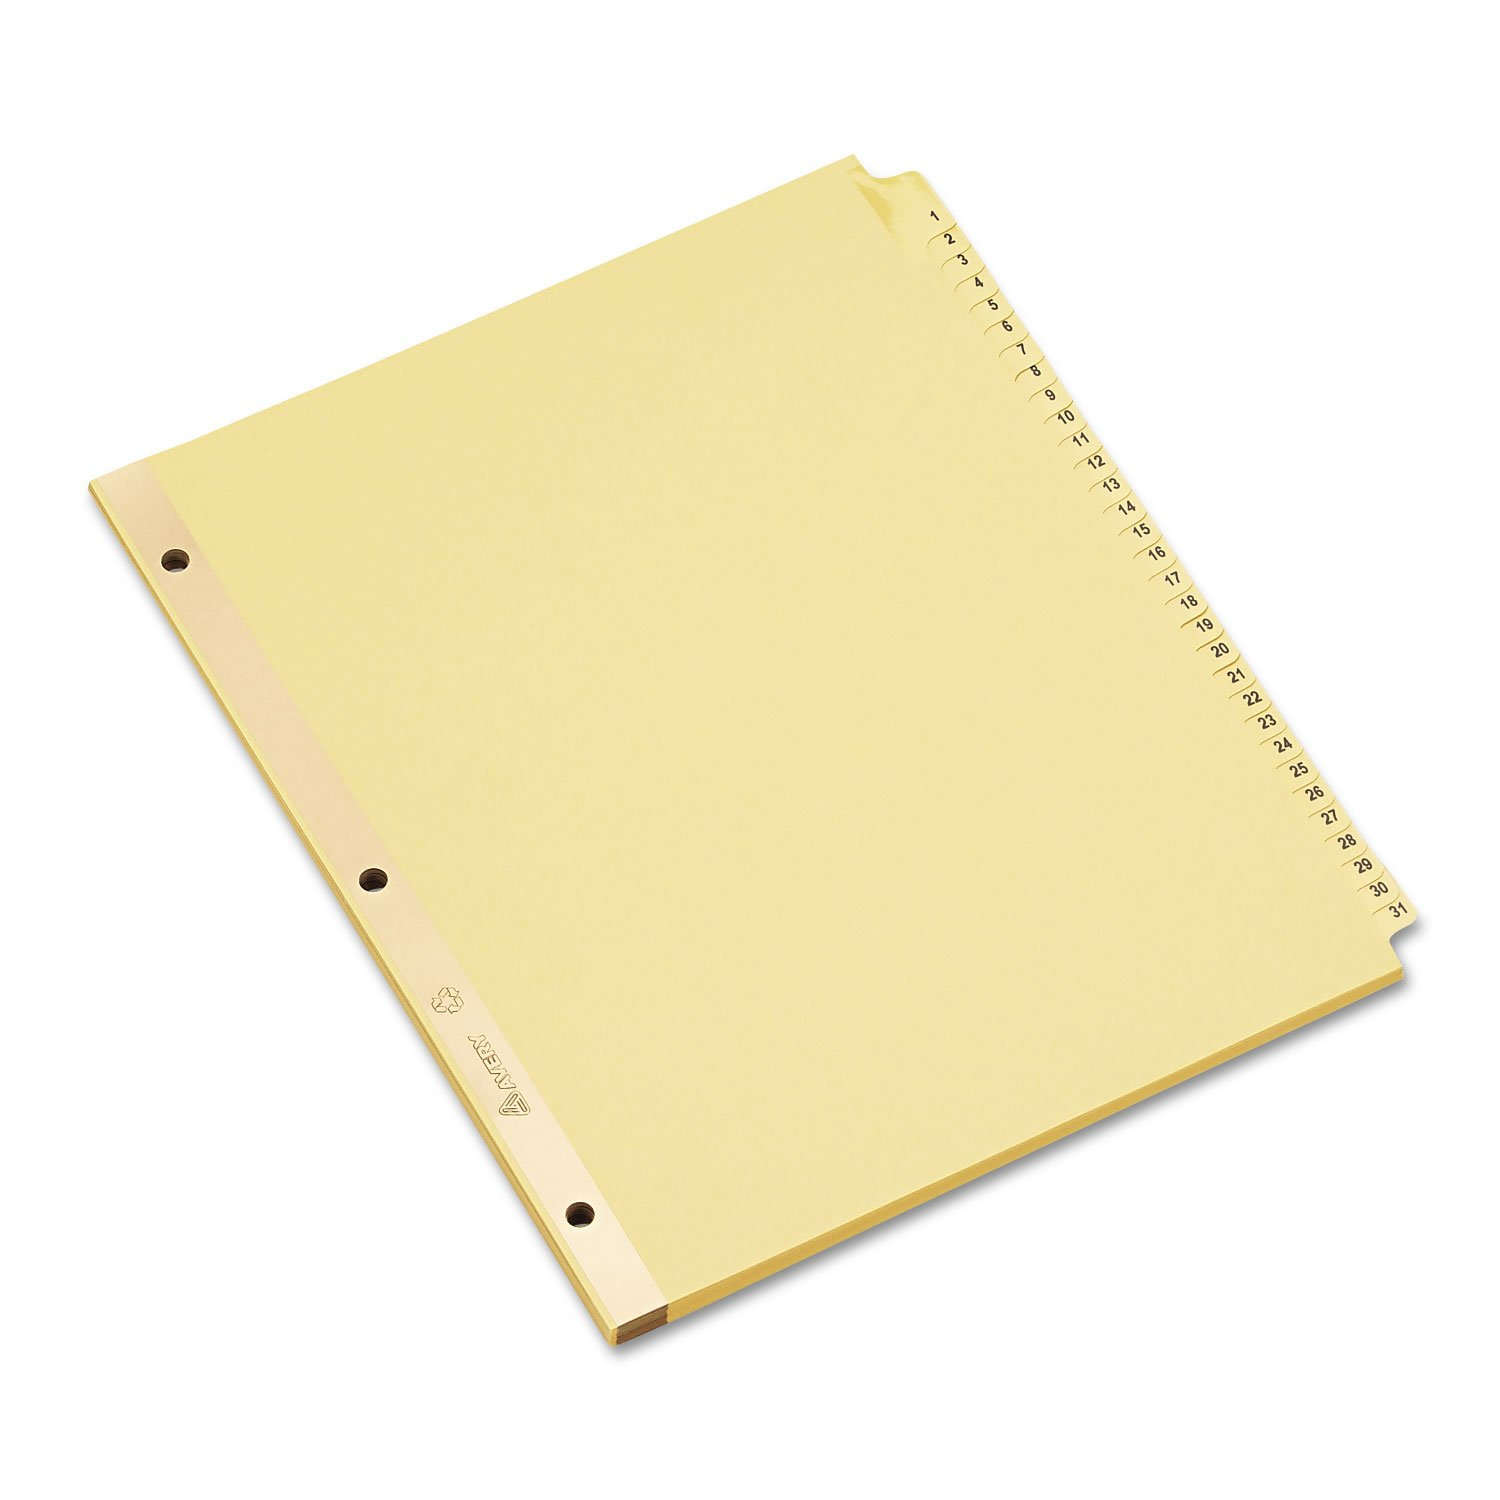 Avery 11308 Preprinted Dividers, 1-31 Tabs, 8-1/2 x 11, Buff Color, 31 Tabs/Set